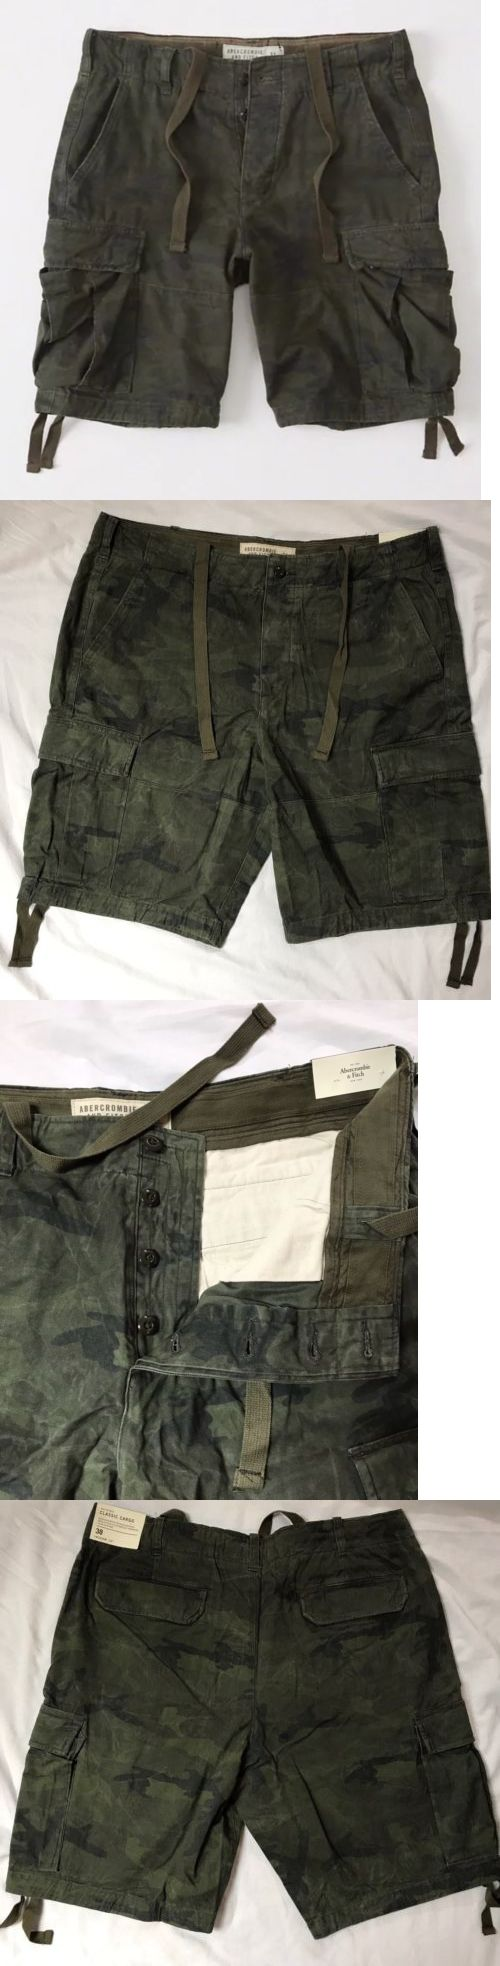 Shorts 15689: 2017 Abercrombie And Fitch Men Classic Cargo Short New With Tag Size 38 -> BUY IT NOW ONLY: $56.5 on eBay!